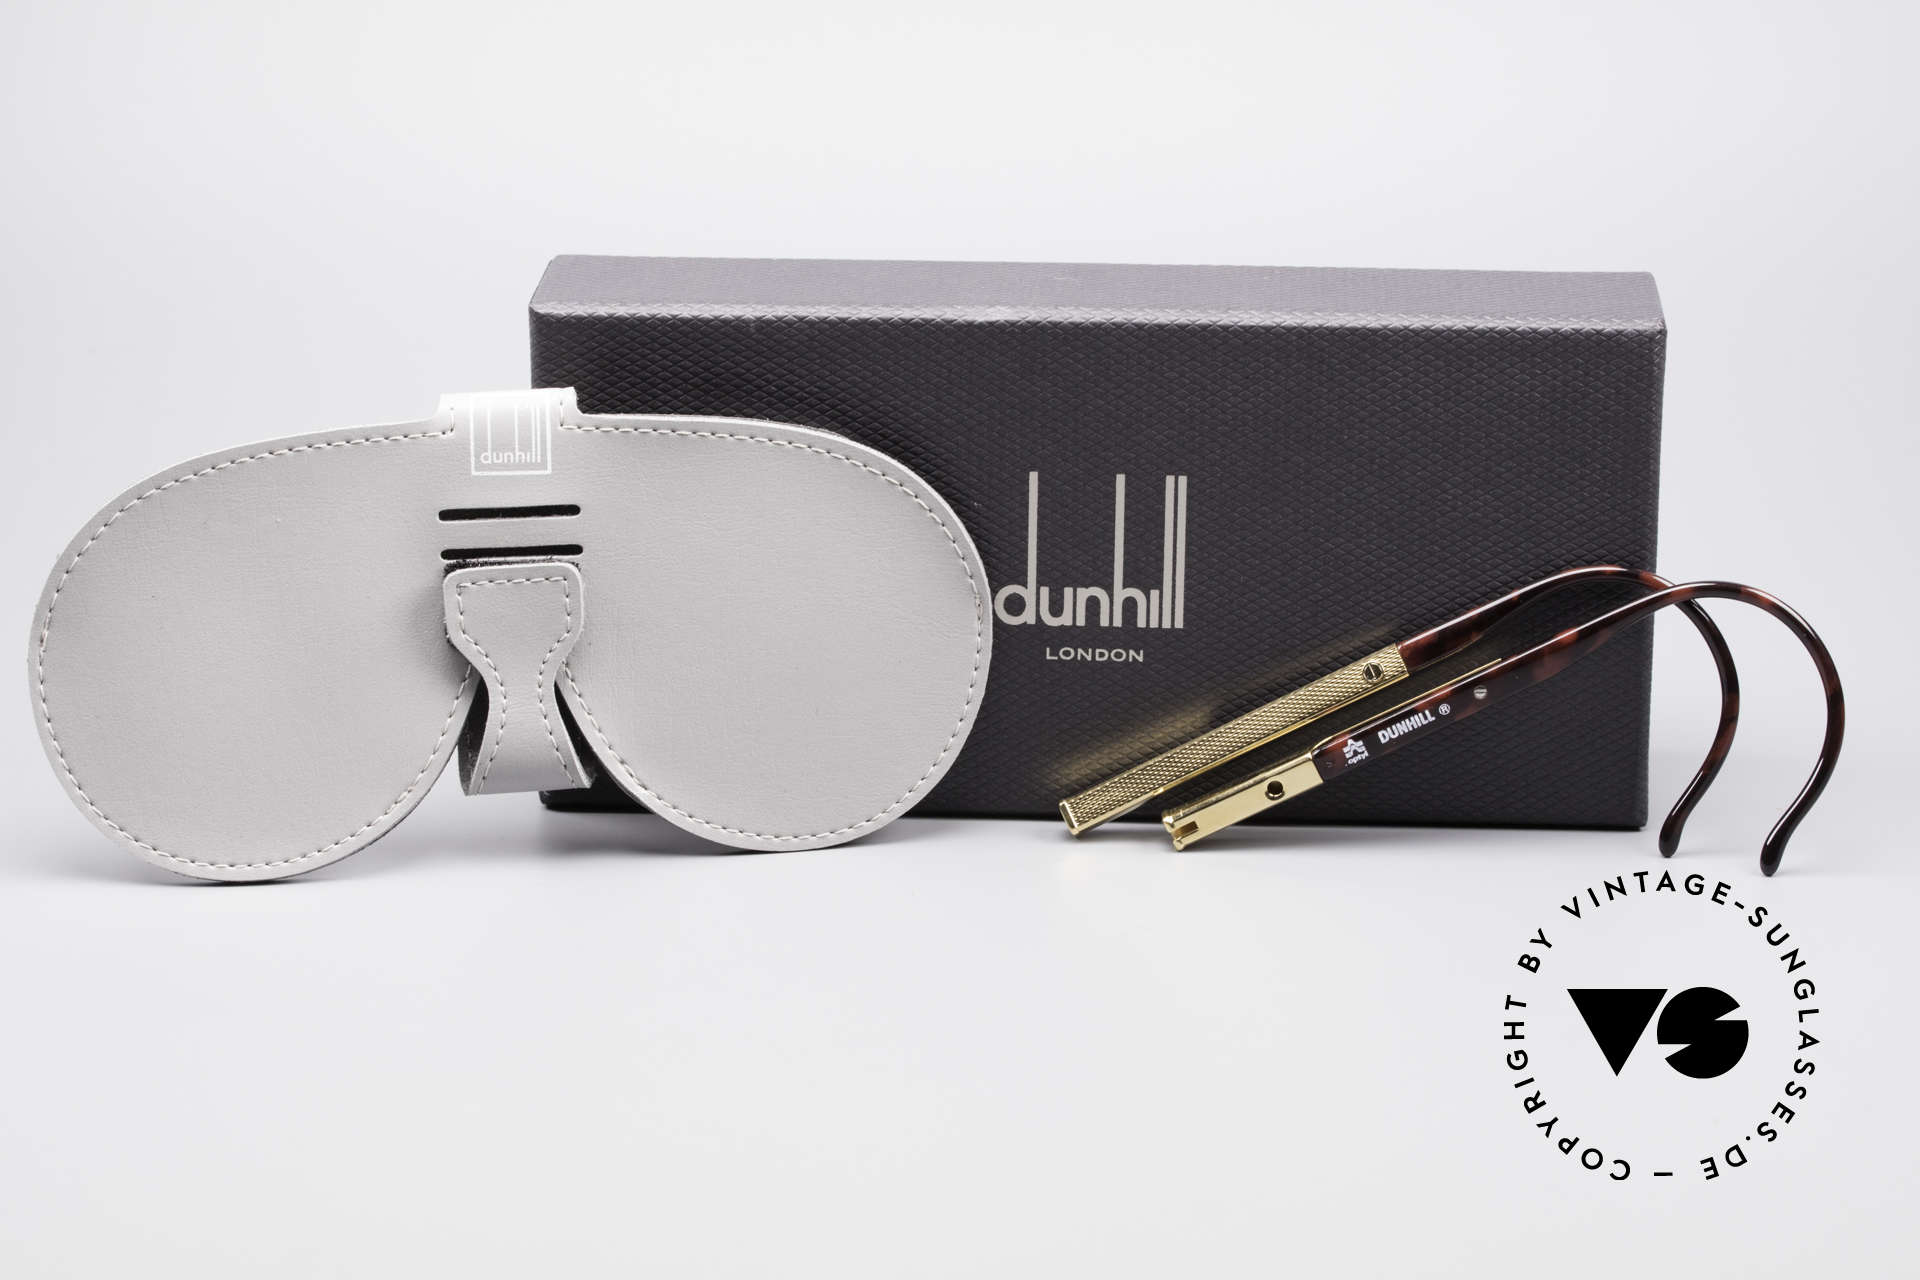 Dunhill 6006 80's Sunglasses Gentlemen, never worn (like all our rare vintage 80's Dunhill), Made for Men